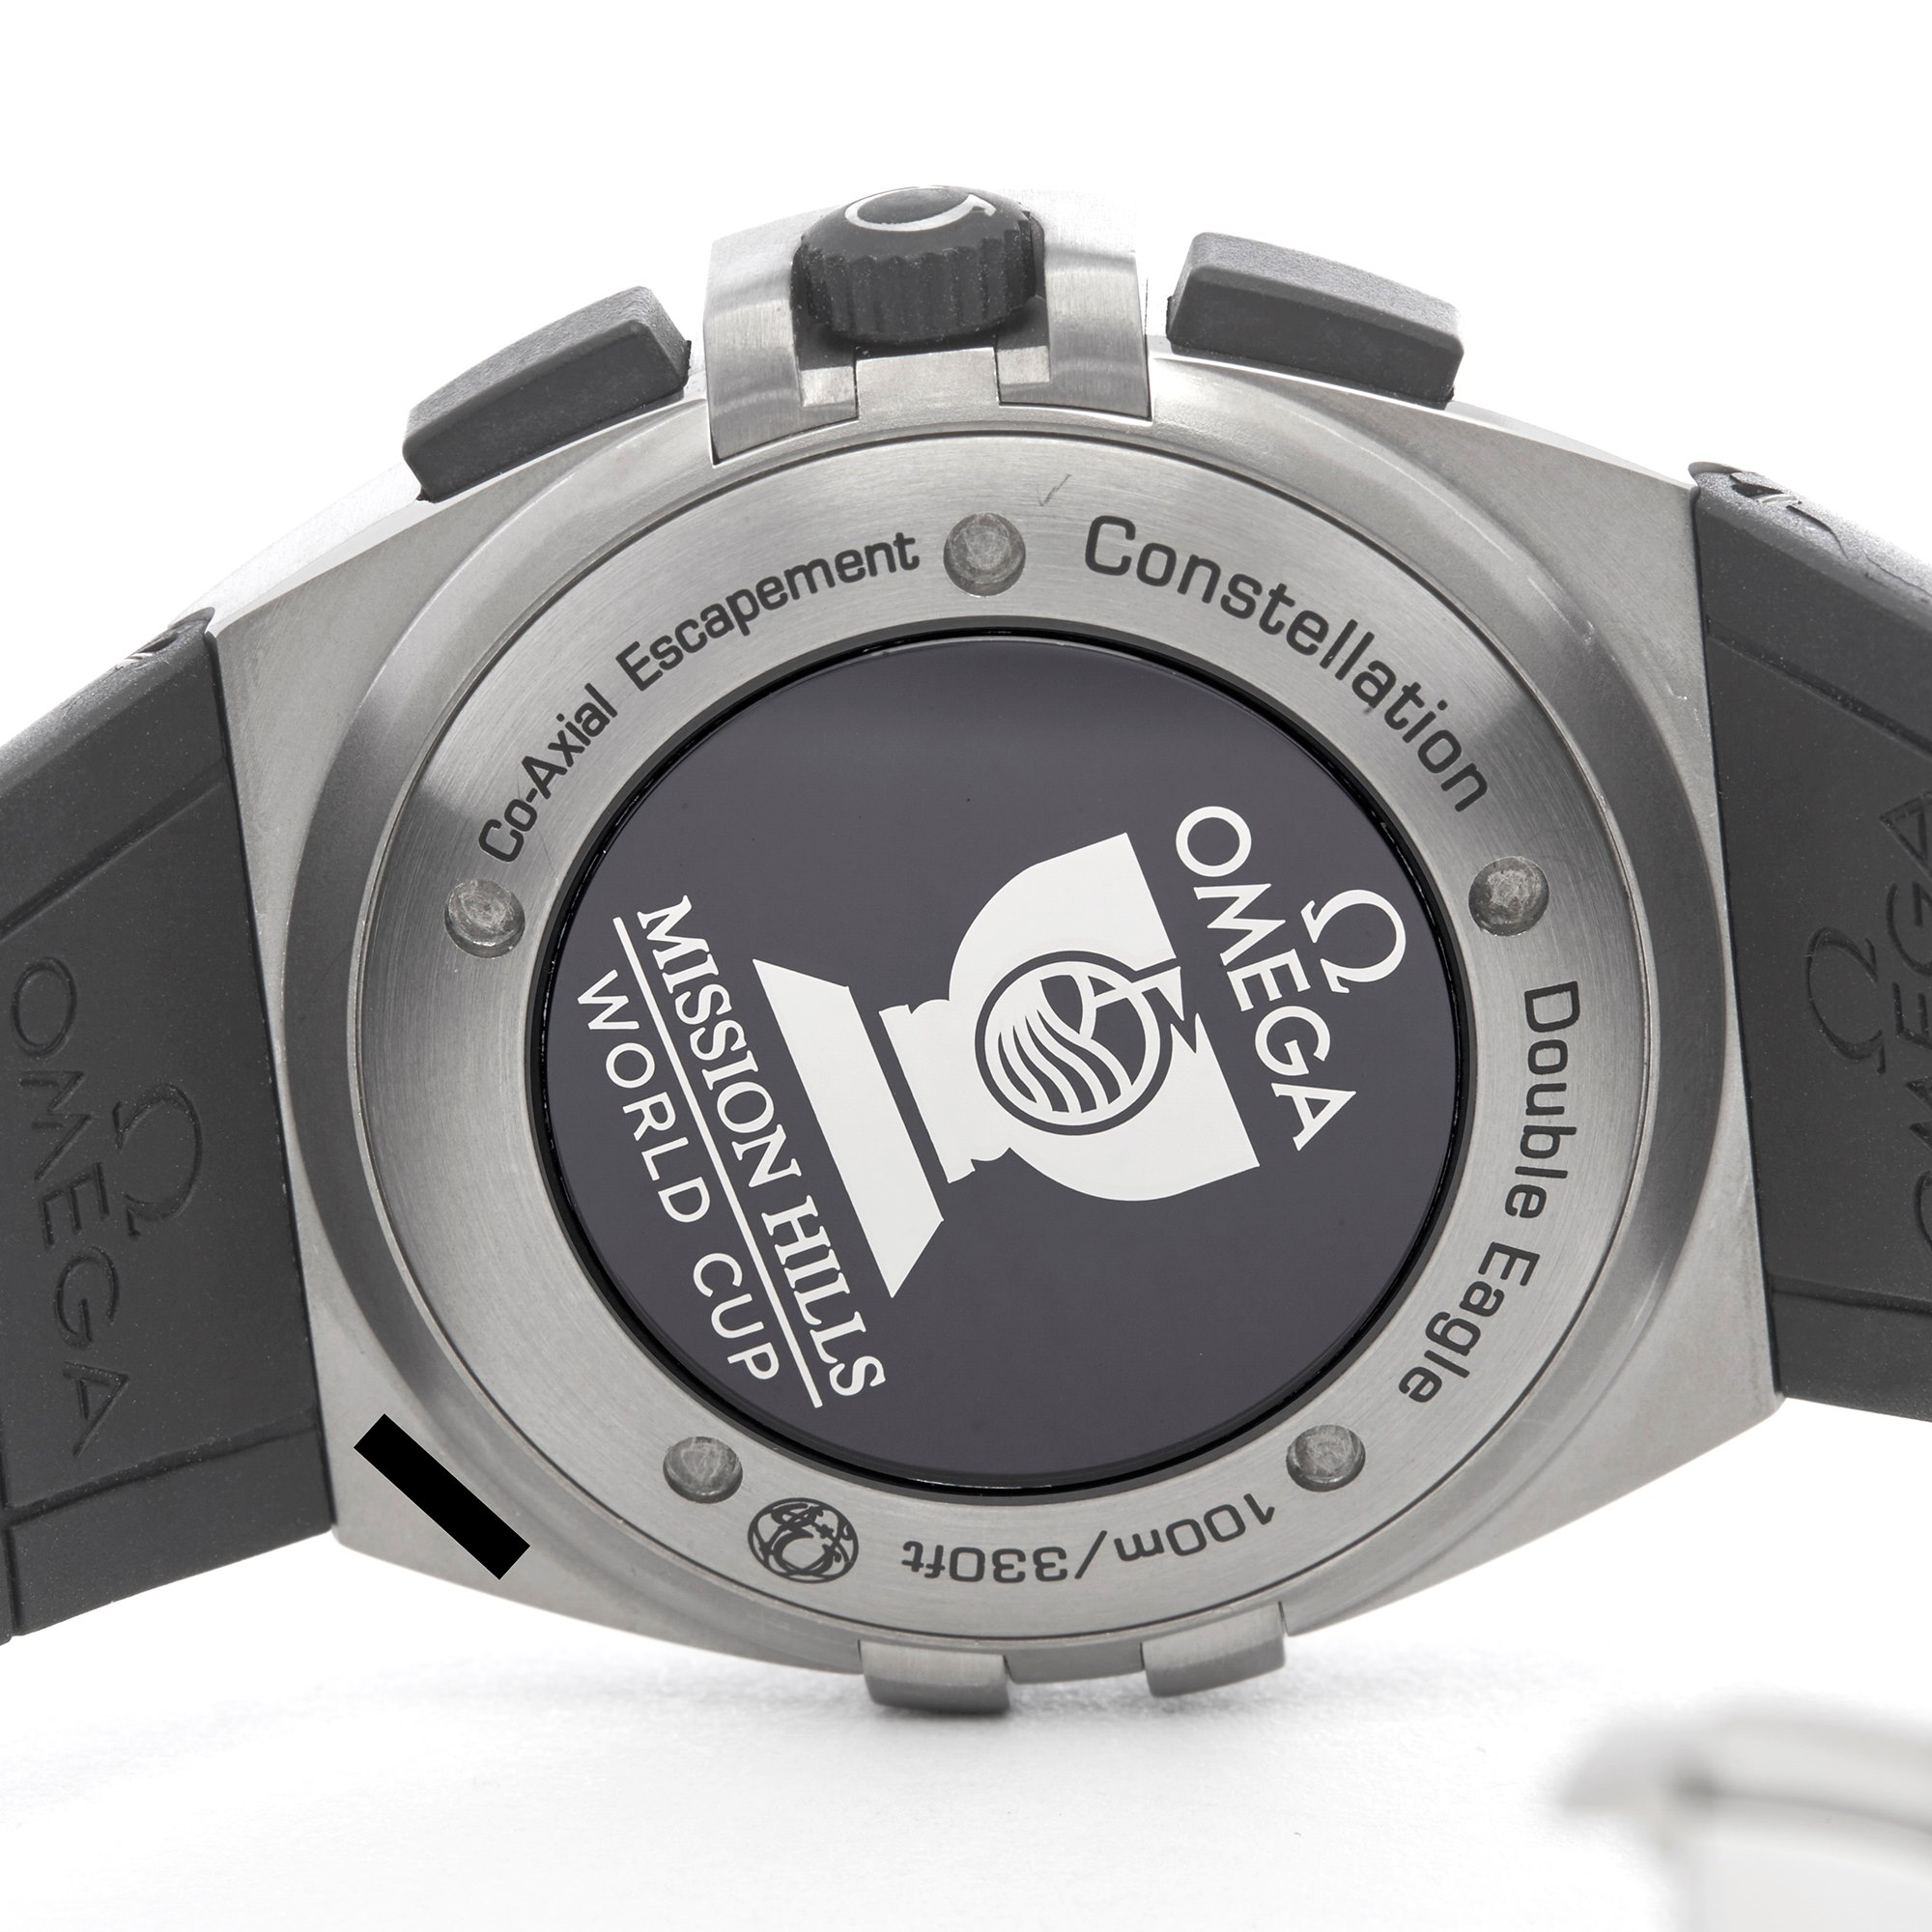 Omega Constellation Double Eagle Mission Hills World Cup Chronograph Titanium 121.92.41.50.01.001